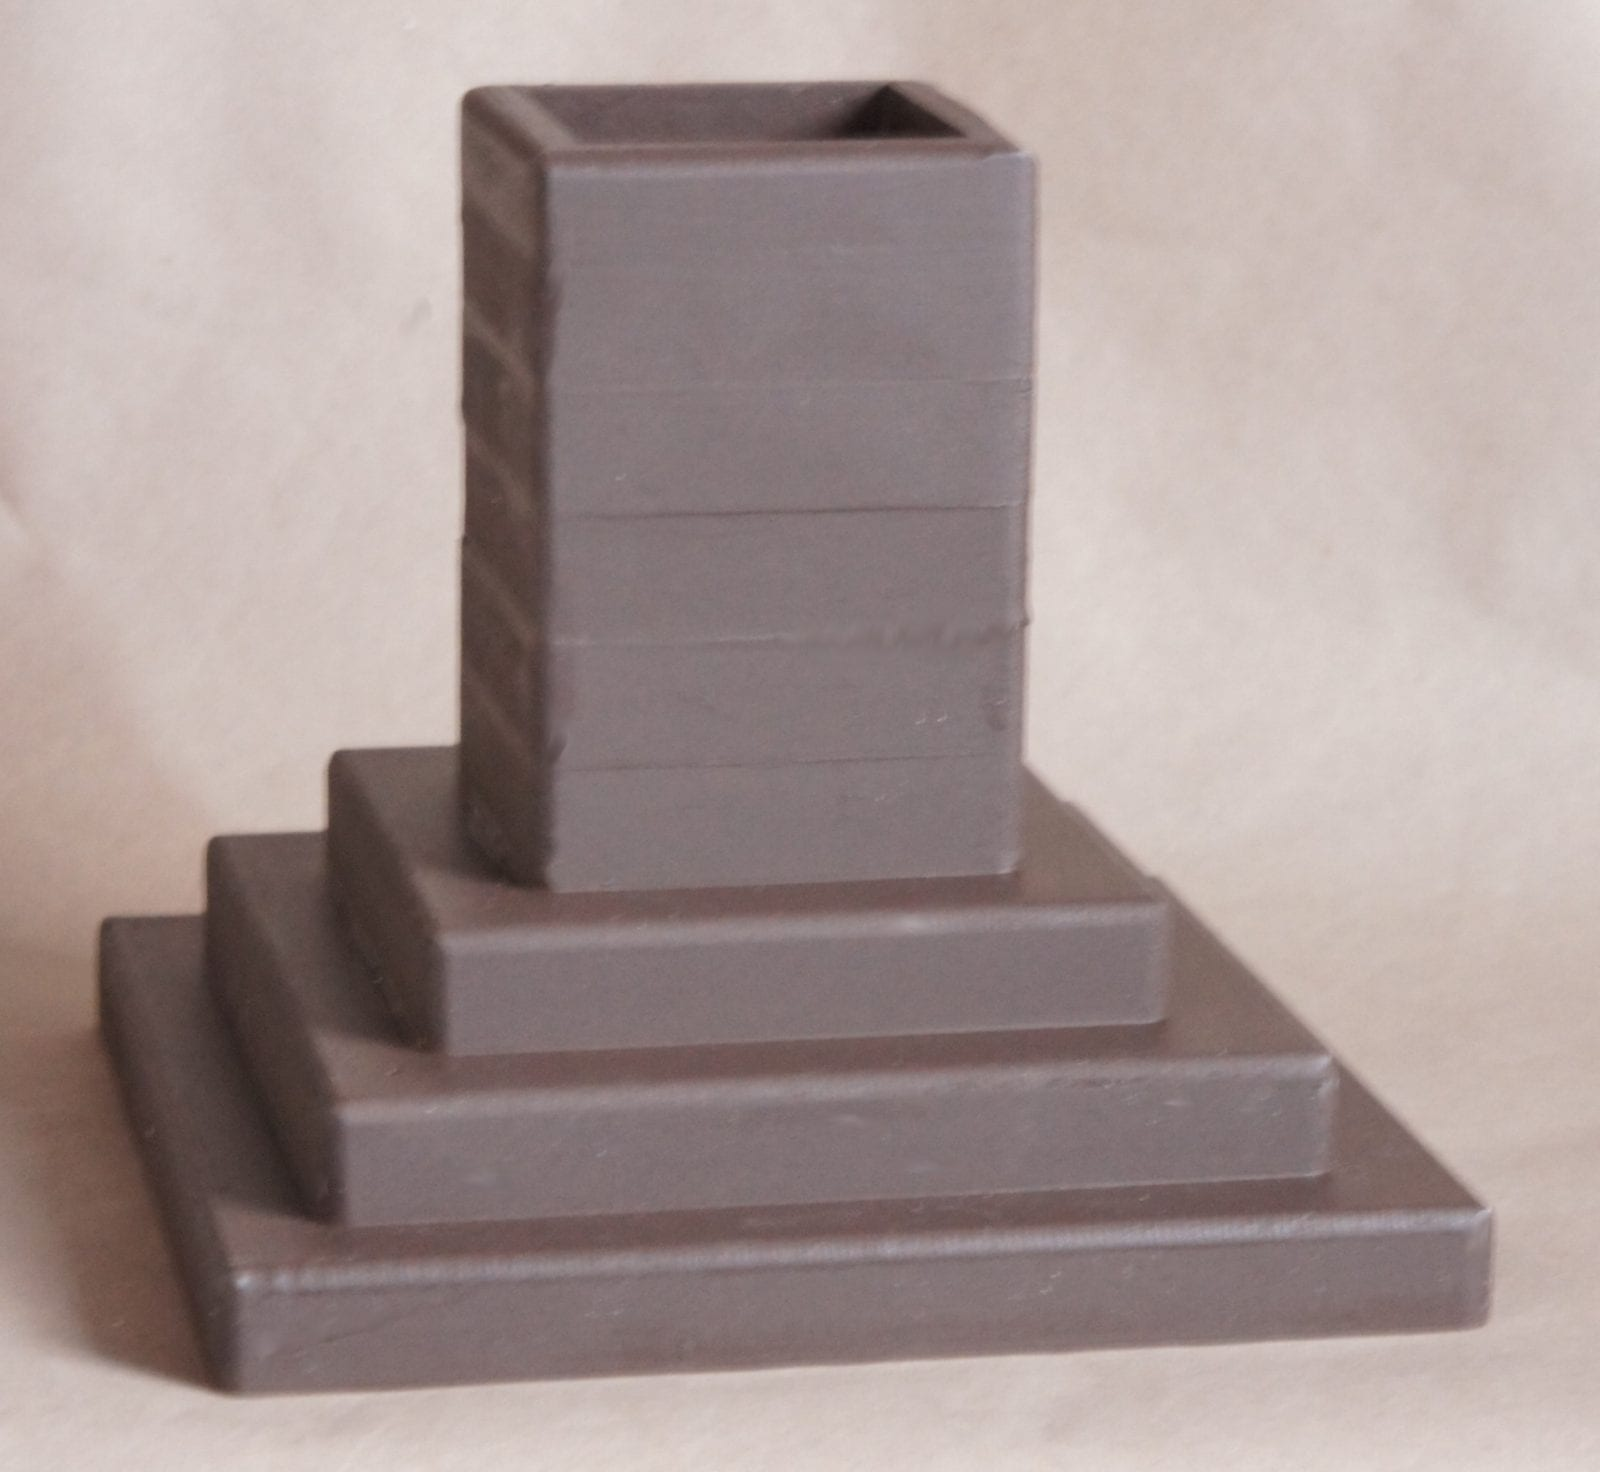 3x3 Pocket, 8 Inch Lift Height, Brown Espresso